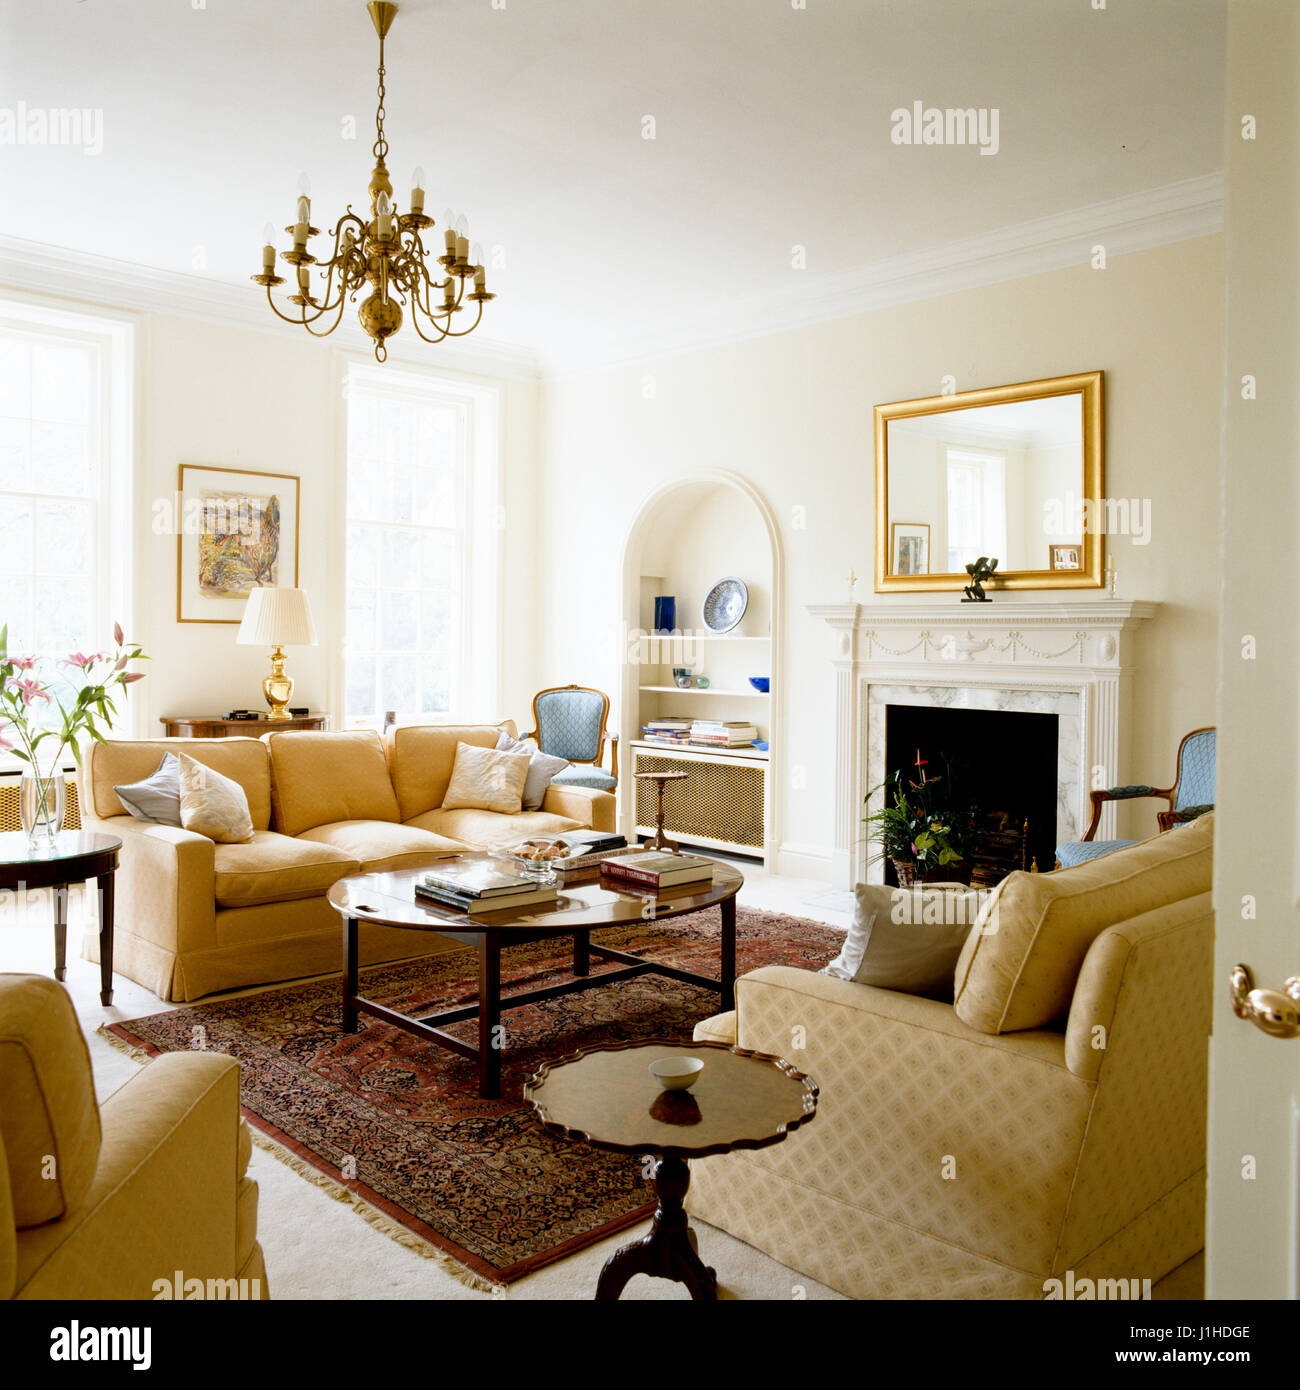 Gustavian living room with chandelier Stock Photo: 138681438 - Alamy